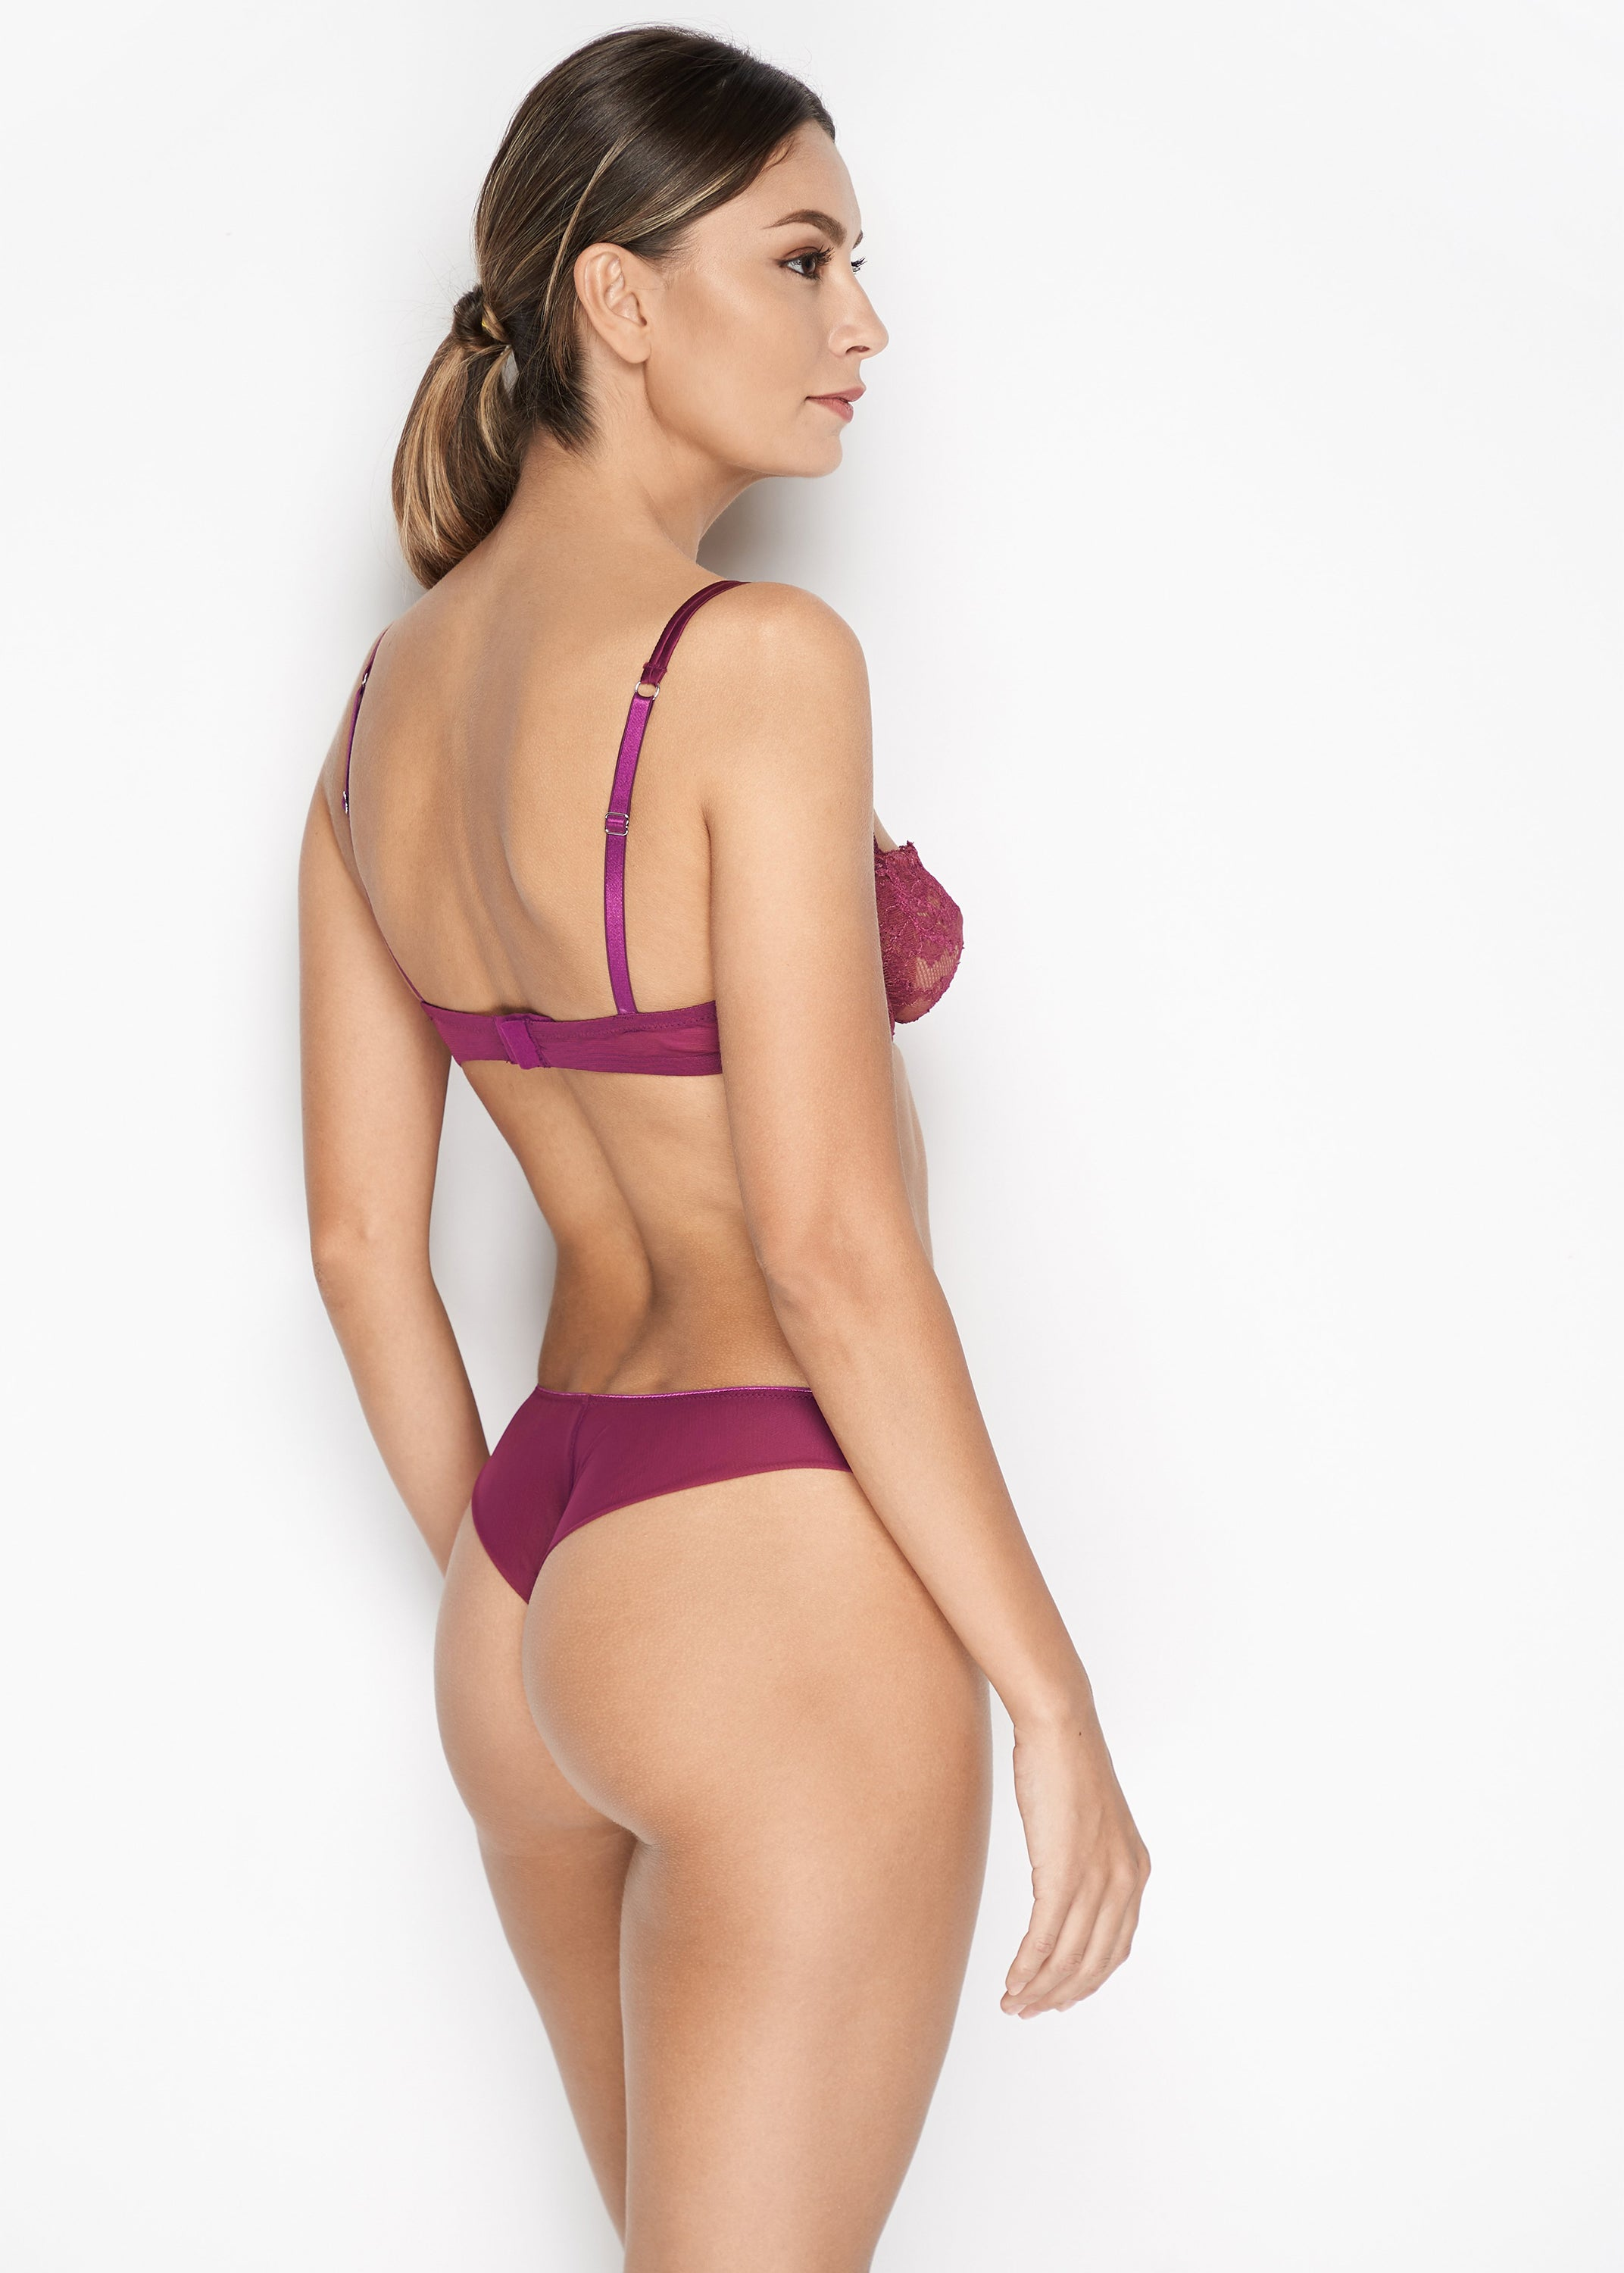 Jardin Des Roses Thong in Orchid